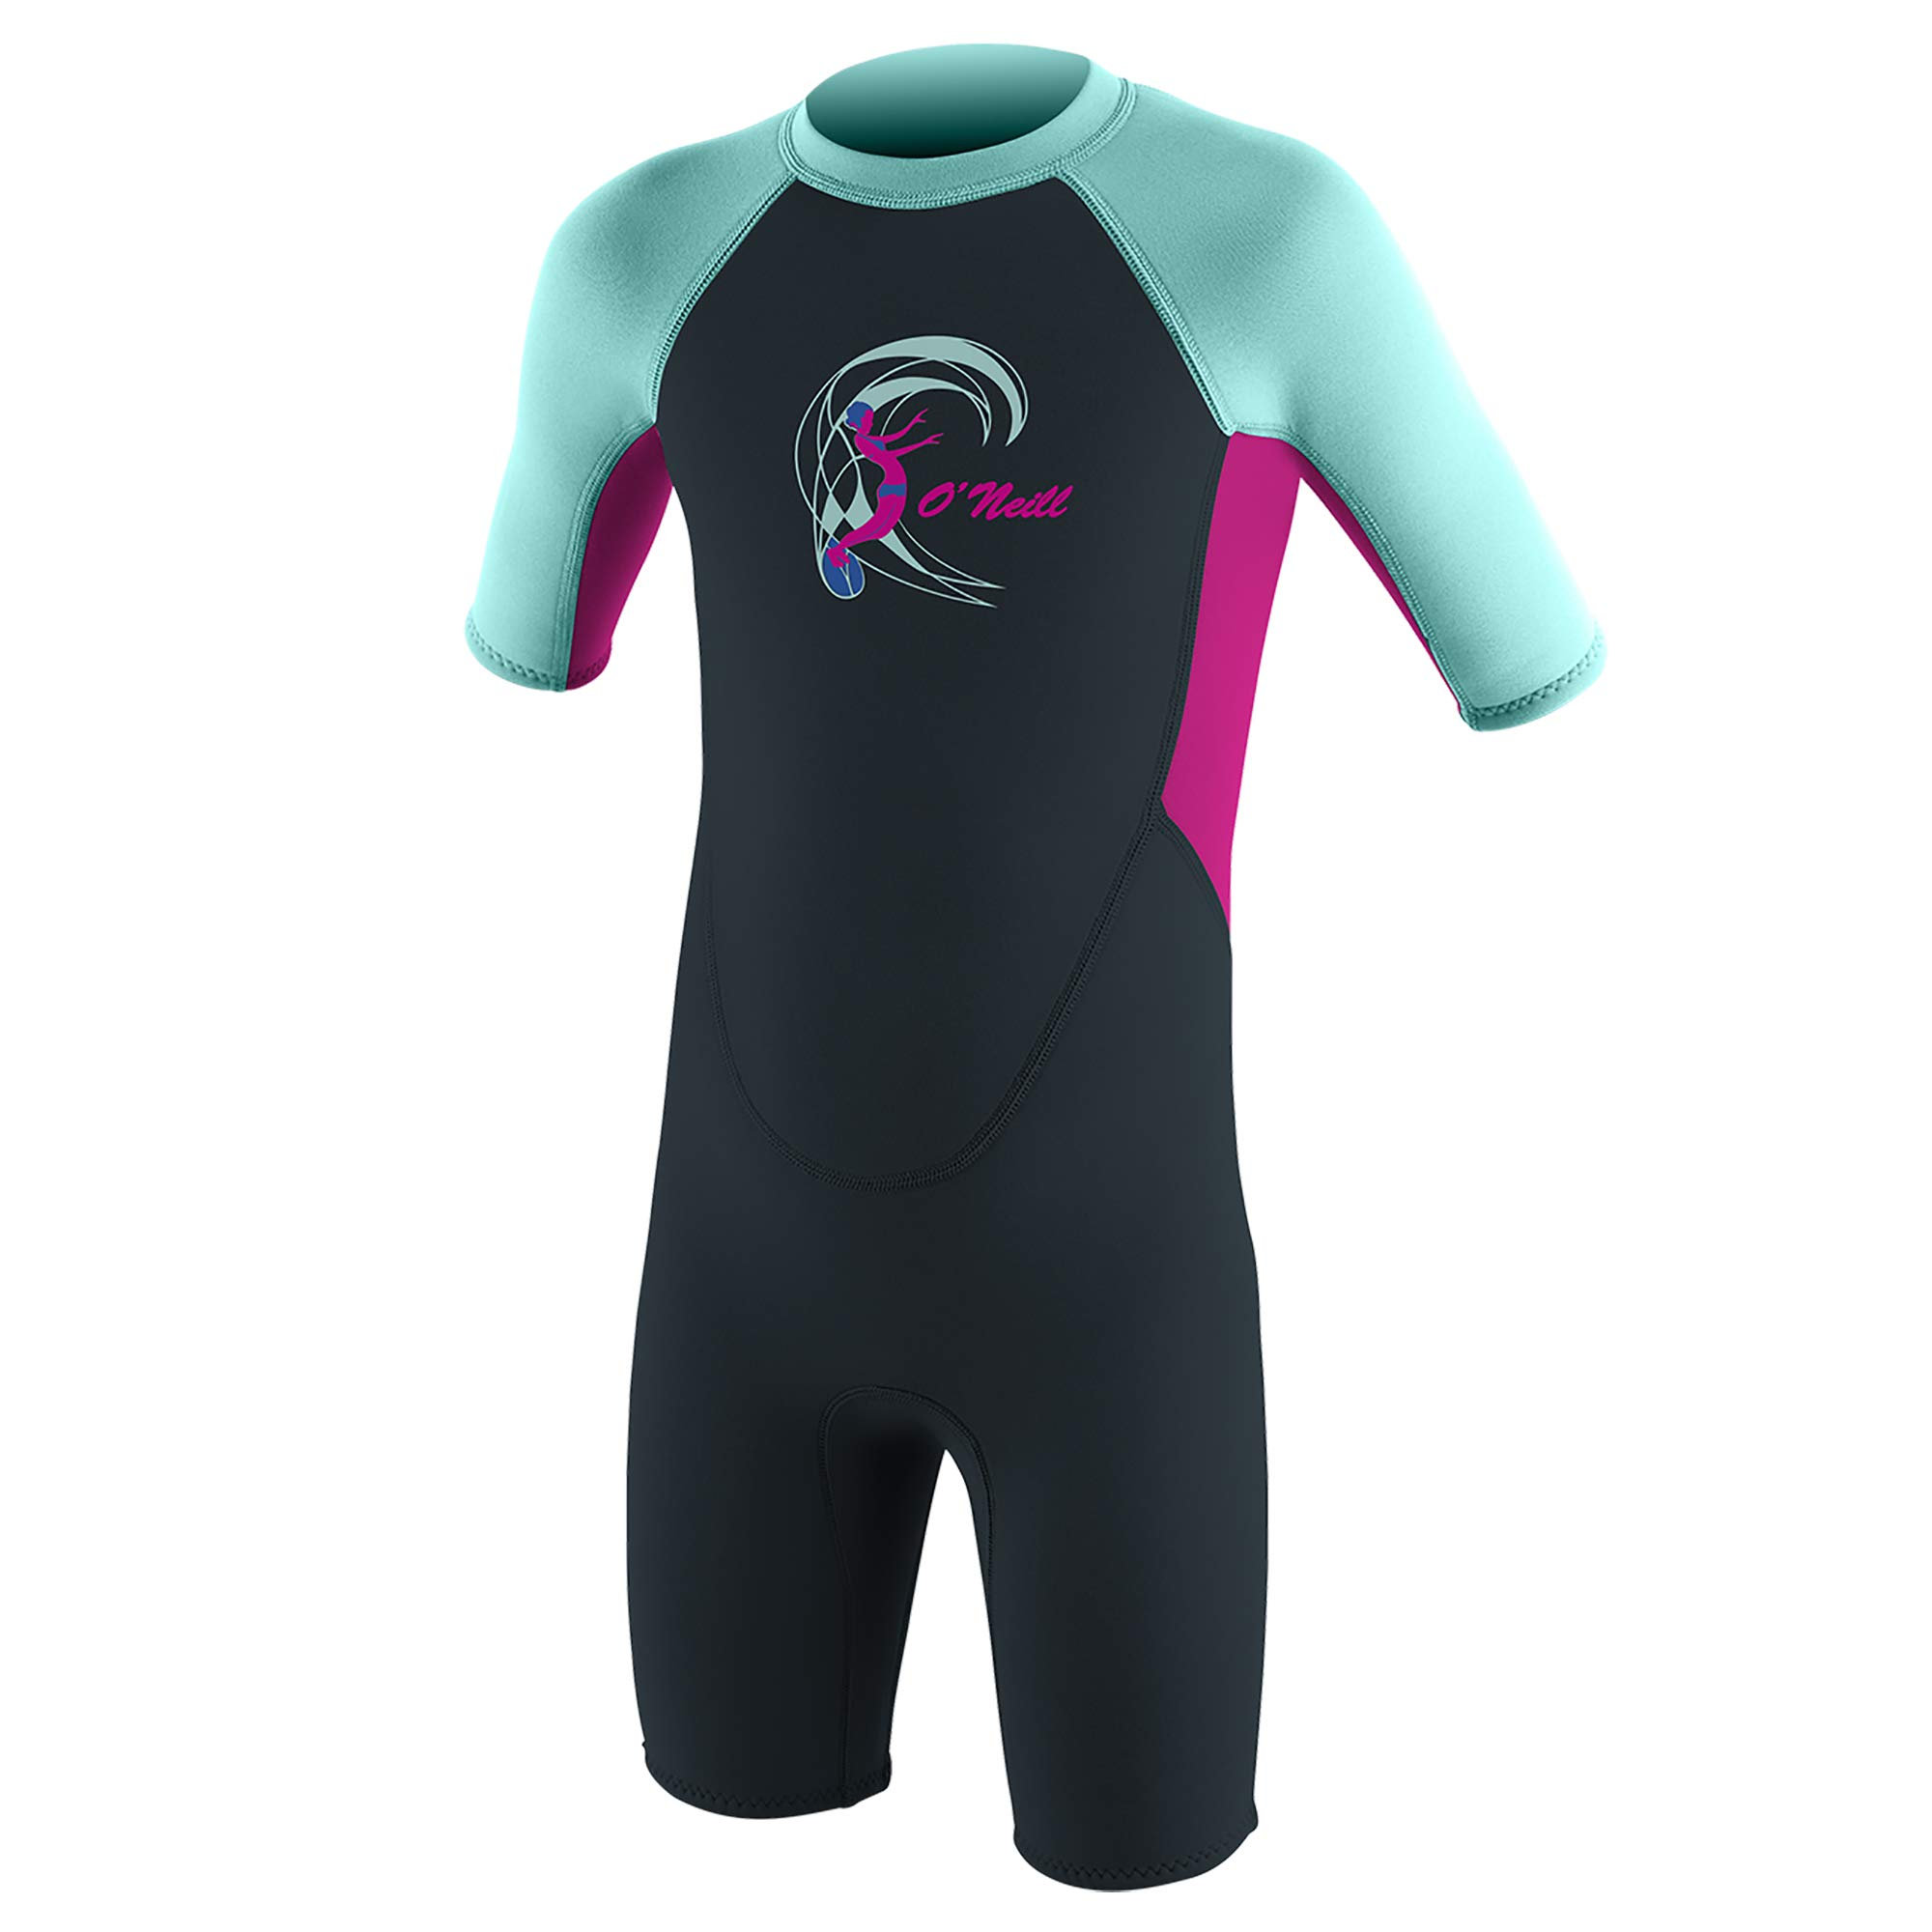 O'Neill Wetsuits Toddler Reactor-2 2mm Back Zip Short Sleeve Spring, Slate/Berry/Seaglass, 2 by O'Neill Wetsuits